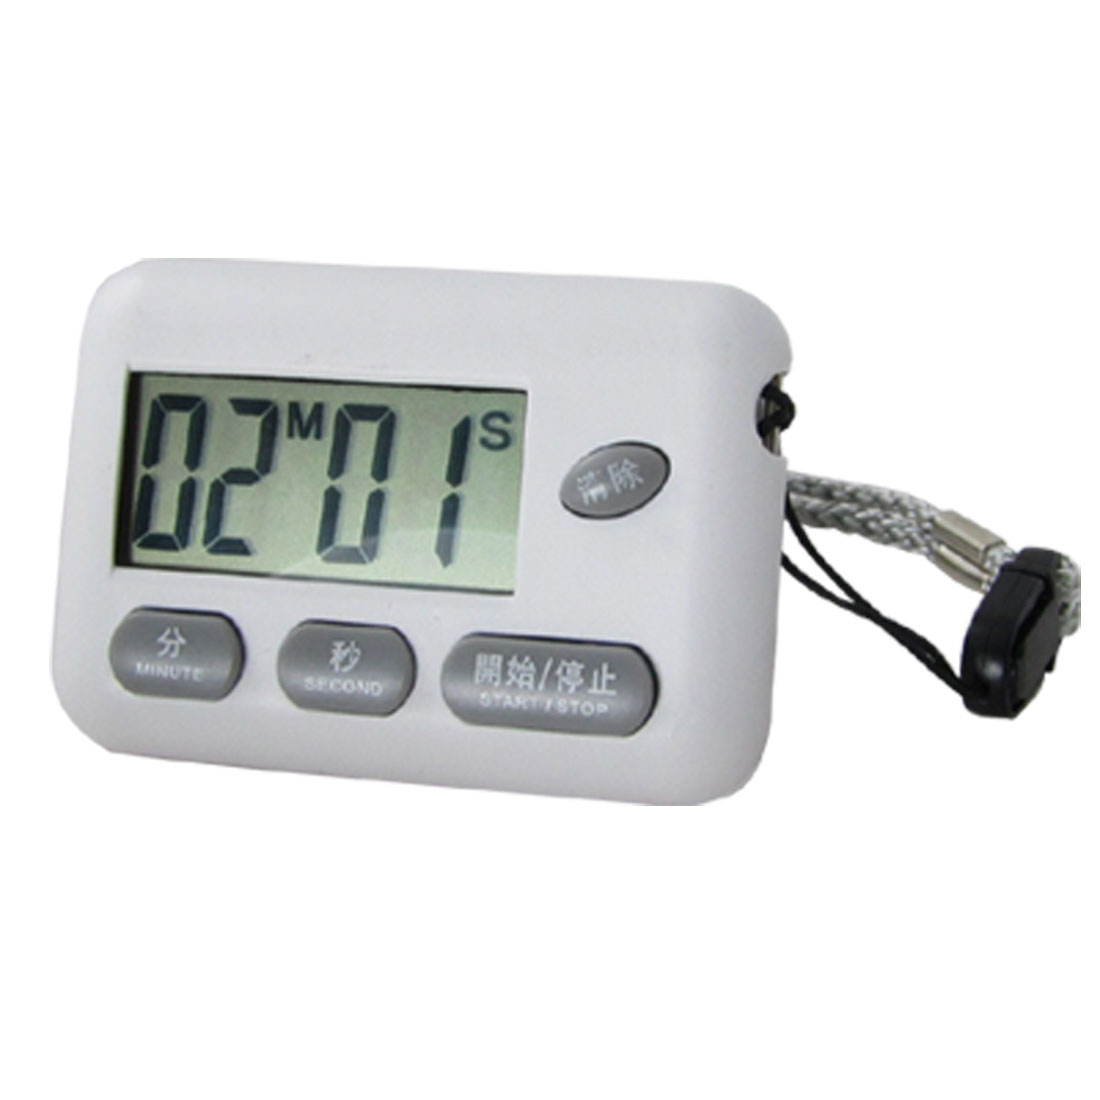 Home Kitchen Sports LCD Digital Count Up Down Timer Alarm w Strap